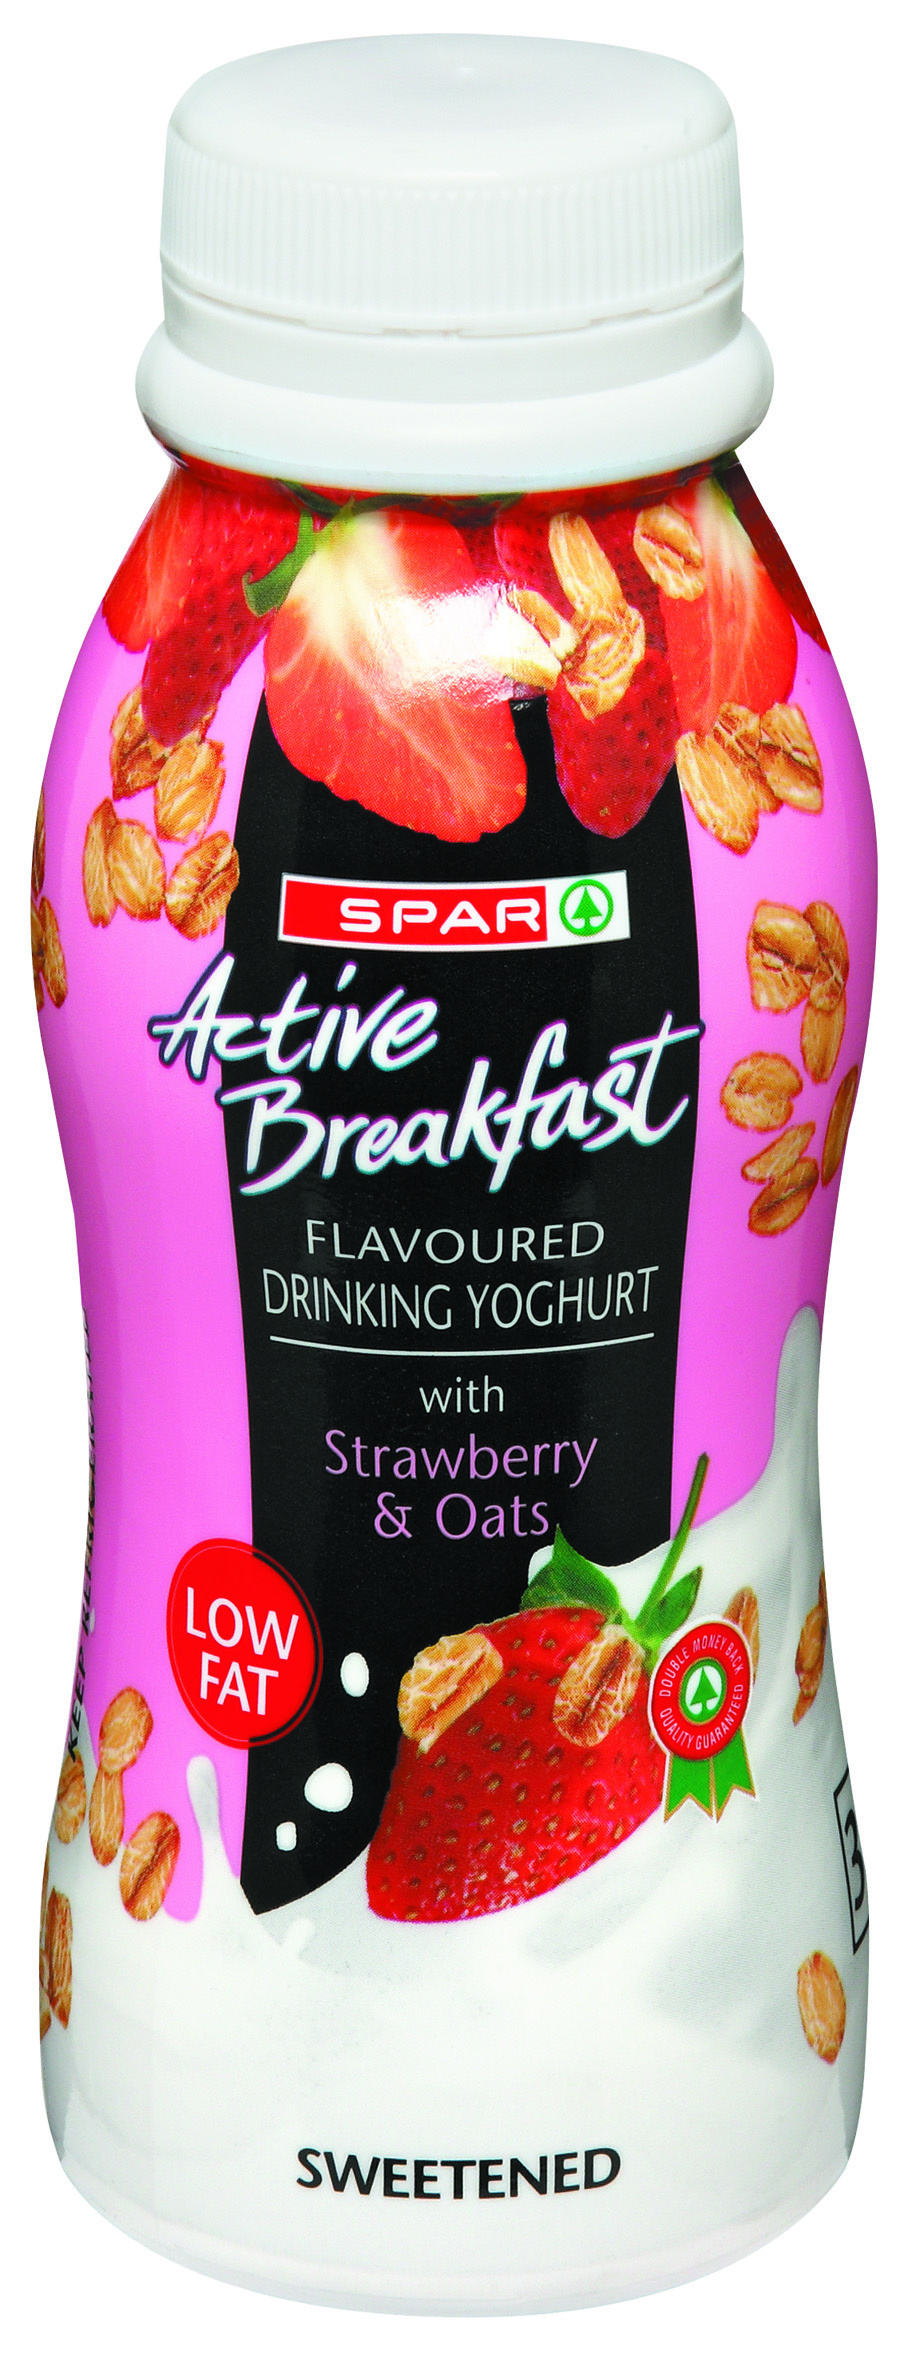 Strawberry & Oats Drinking Yoghurt